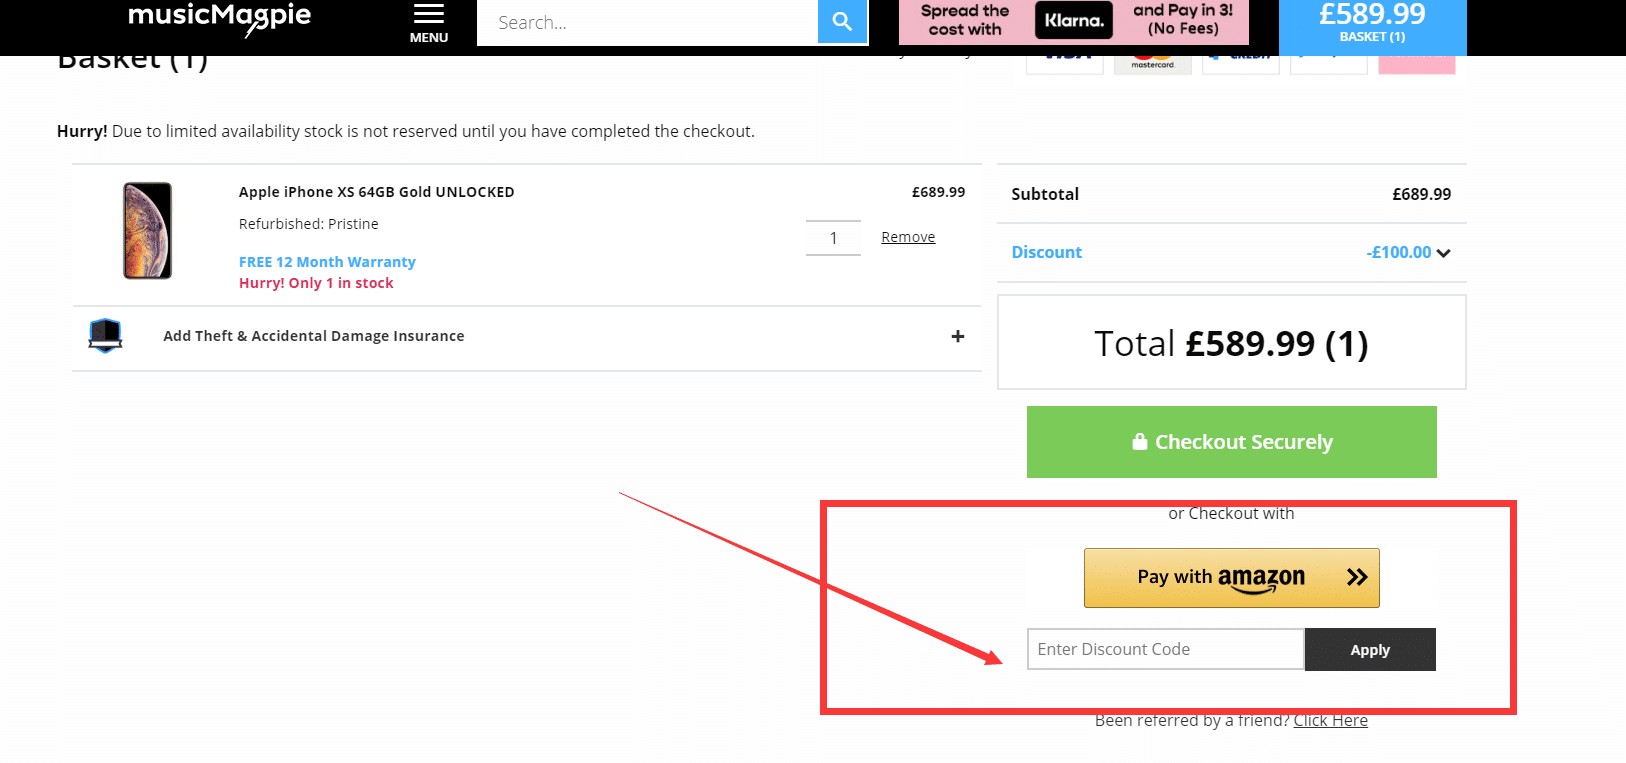 how to use music magpie discount code